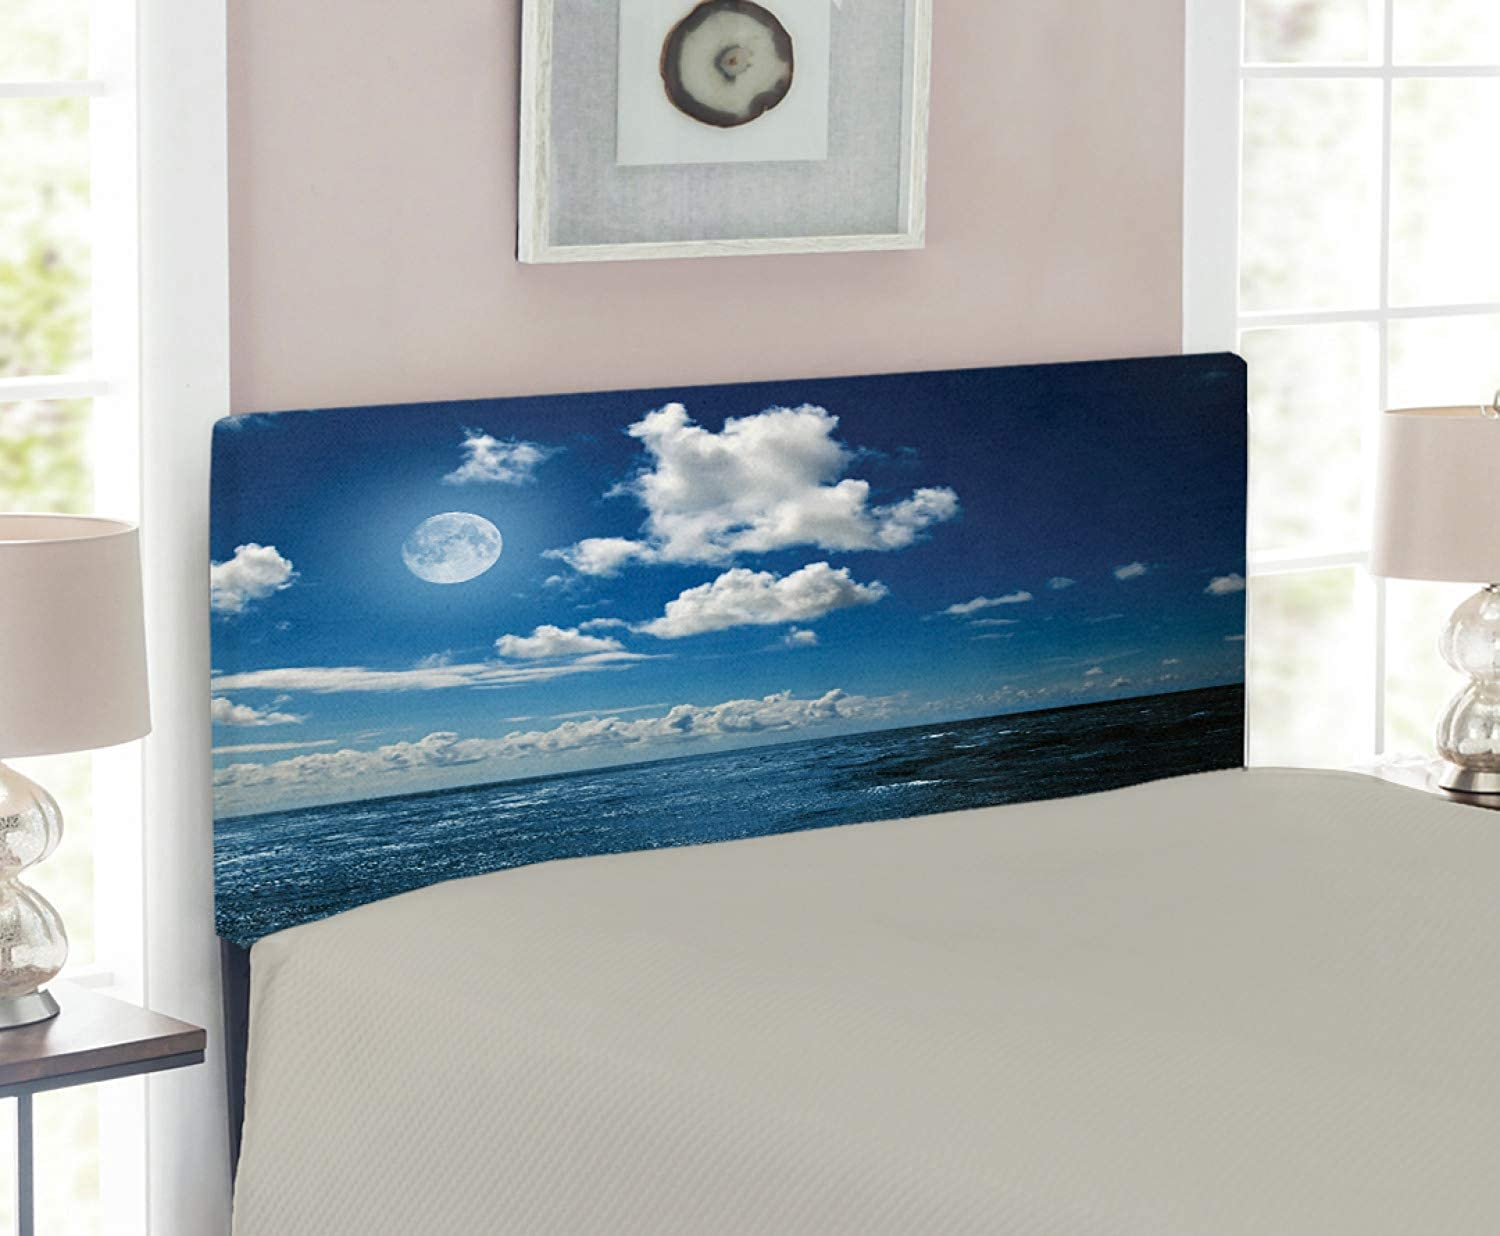 Lunarable Ocean Headboard for Twin Size Bed, Full Moon Night Sky and Wavy Ocean Horizon with Clouds Romantic Scene Image, Upholstered Decorative Metal Headboard with Memory Foam, Navy bluee and White